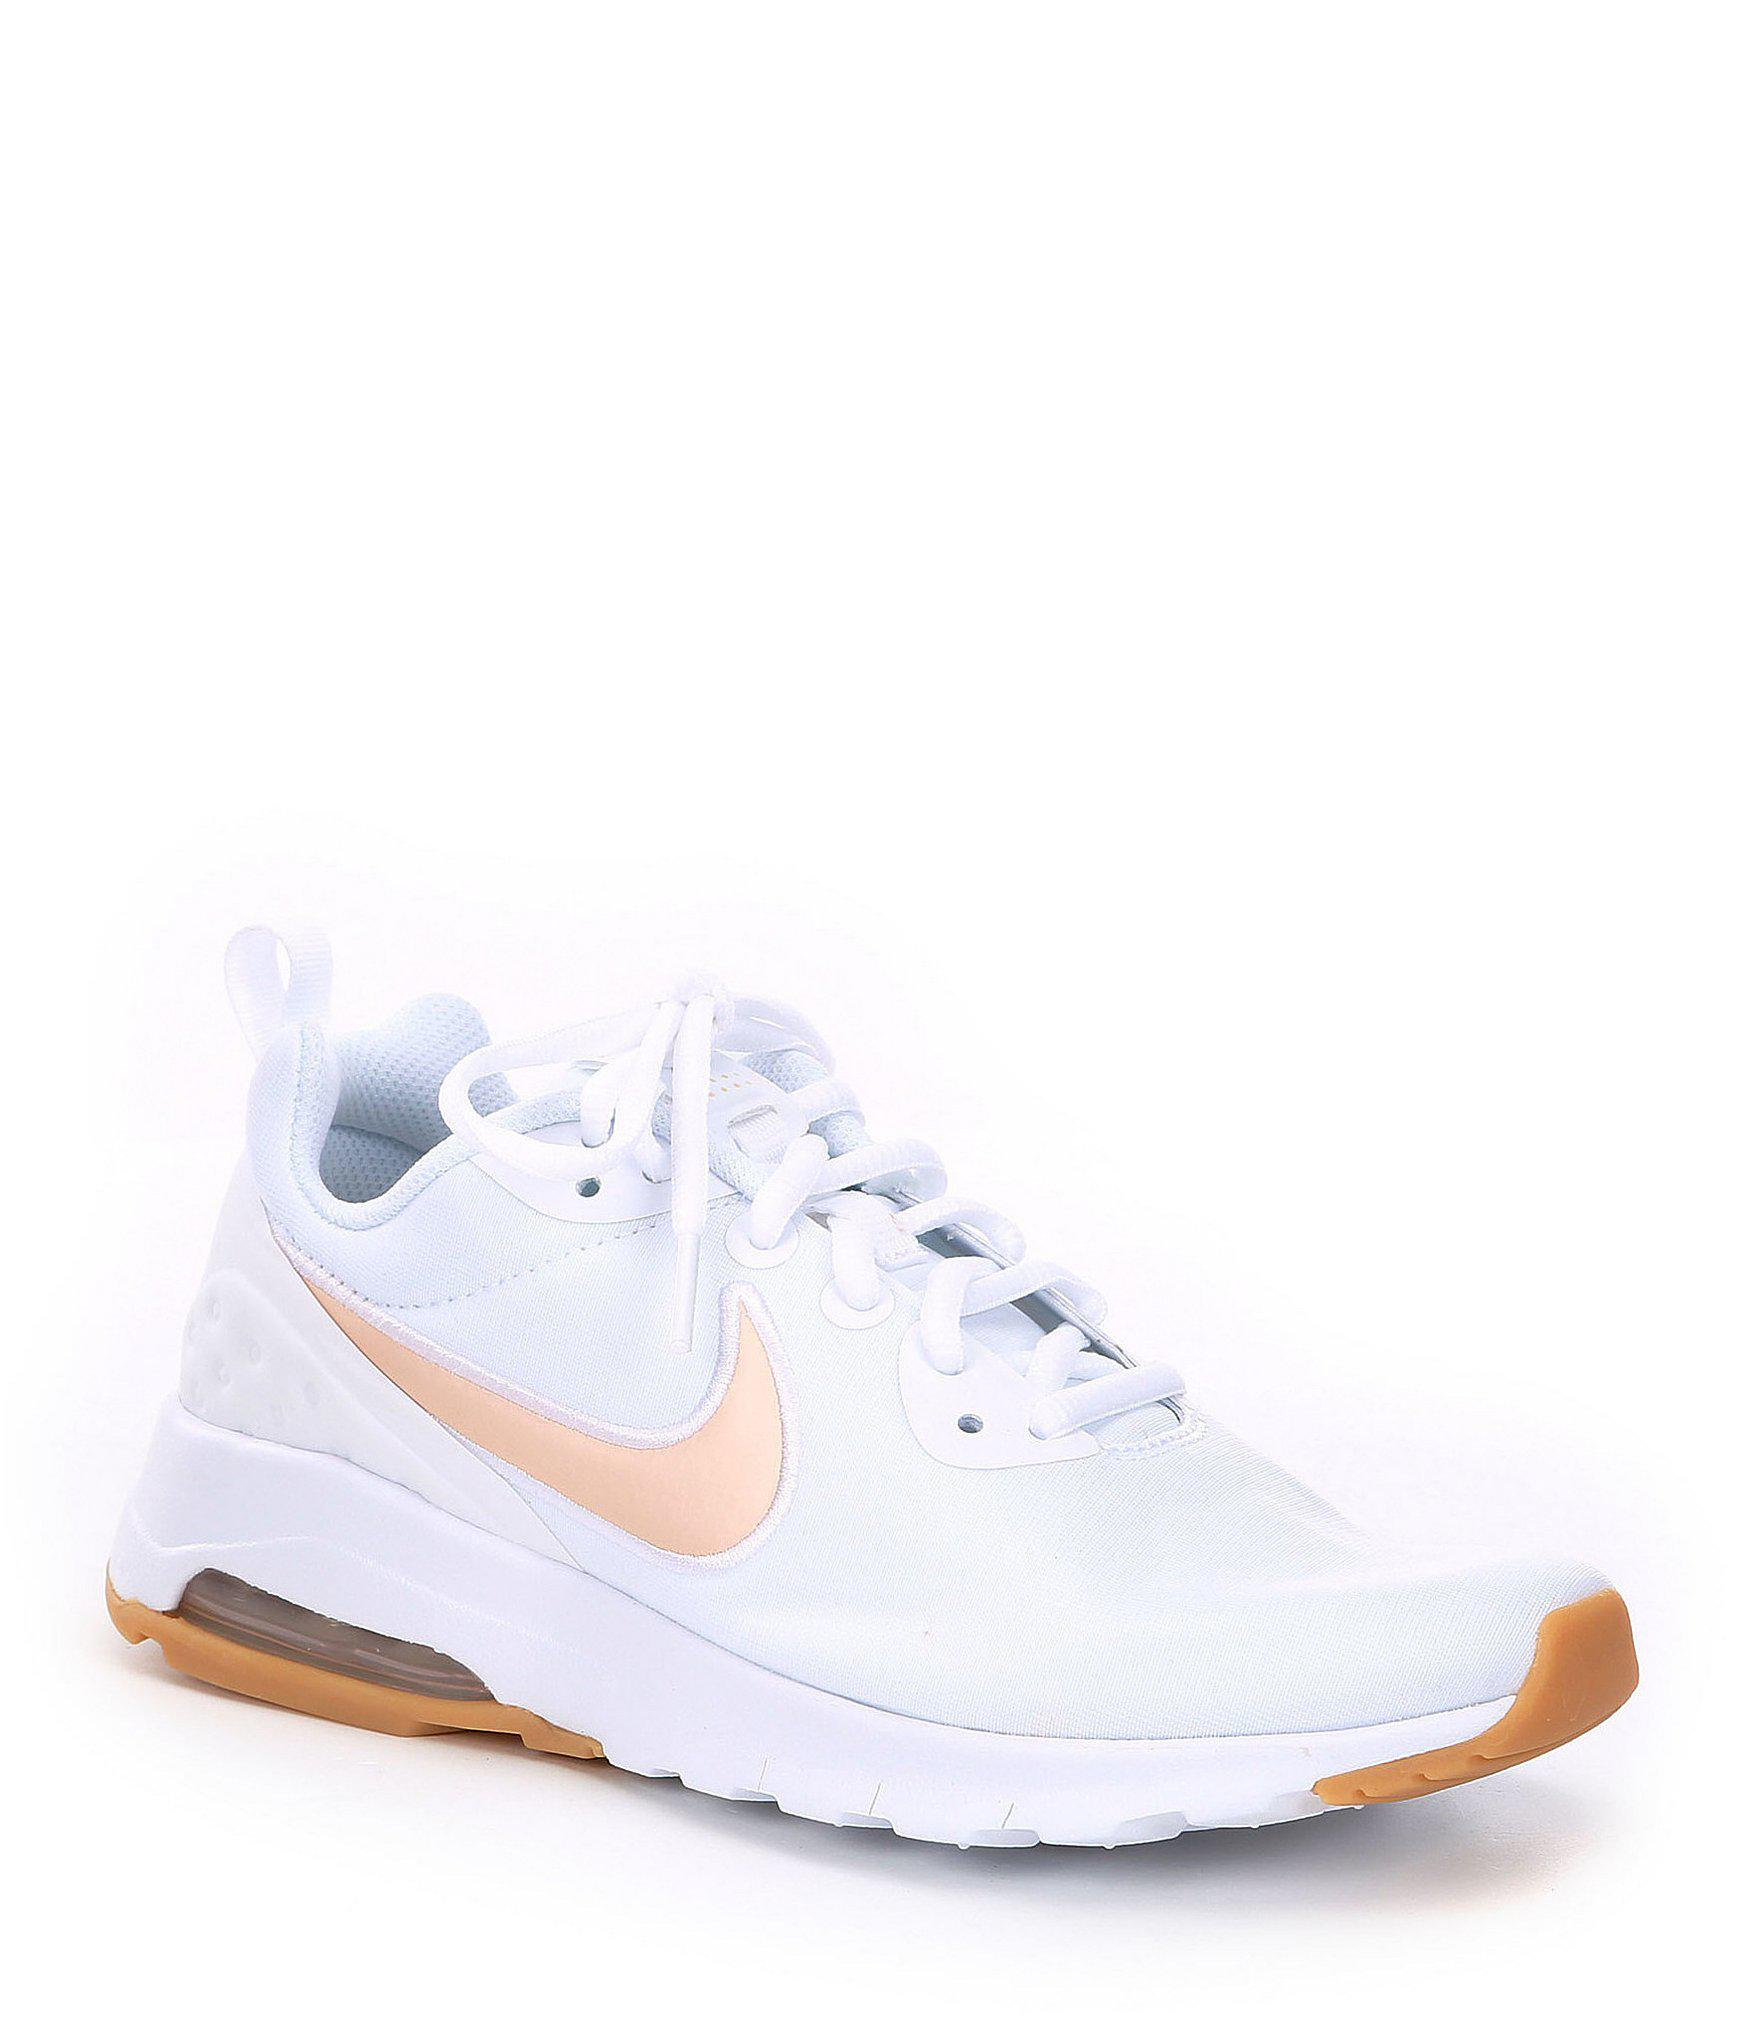 best sneakers f1263 8585d Nike Women s Air Max Motion Lifestyle Shoes in White - Lyst